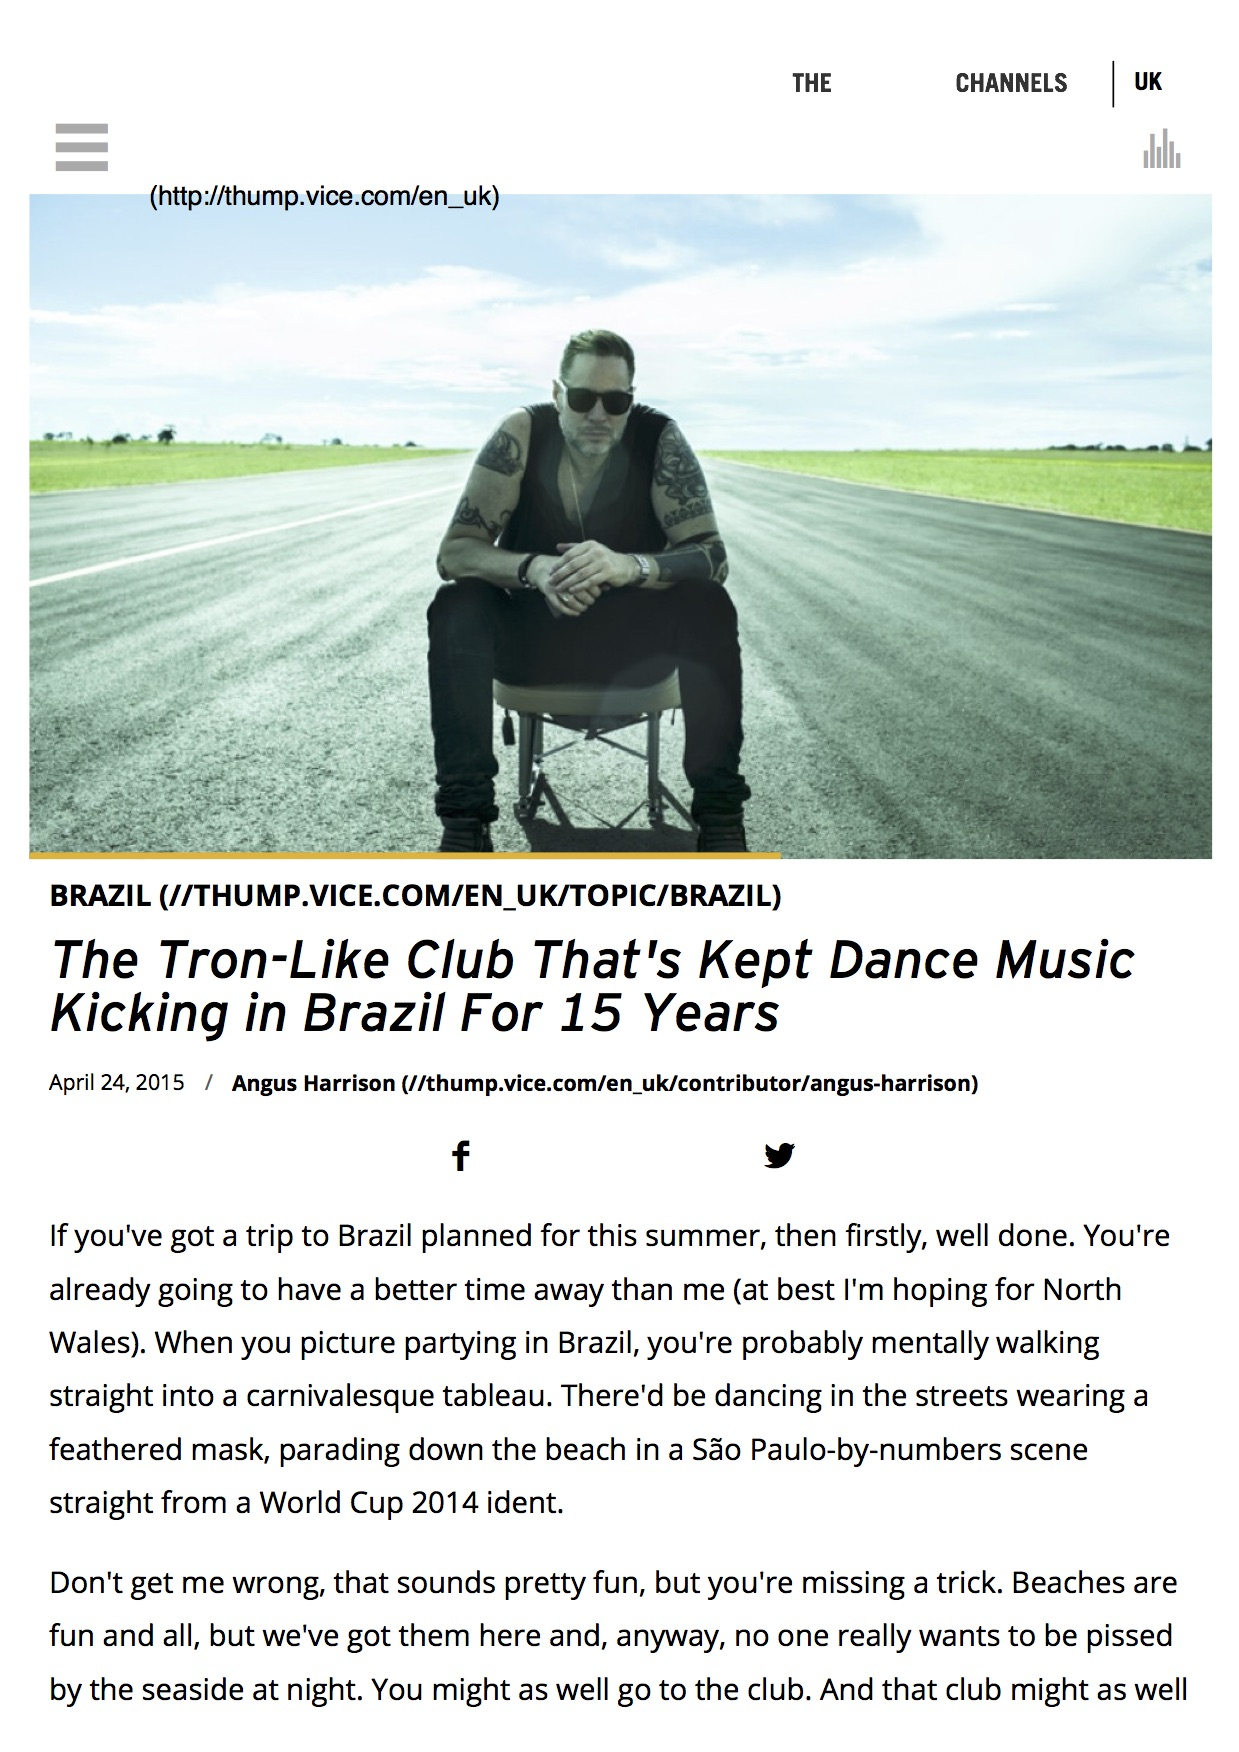 The-Tron-Like-Club-Thats-Kept-Dance-Music-Kicking-in-Brazil-For-15-Years-_-Thump (1)